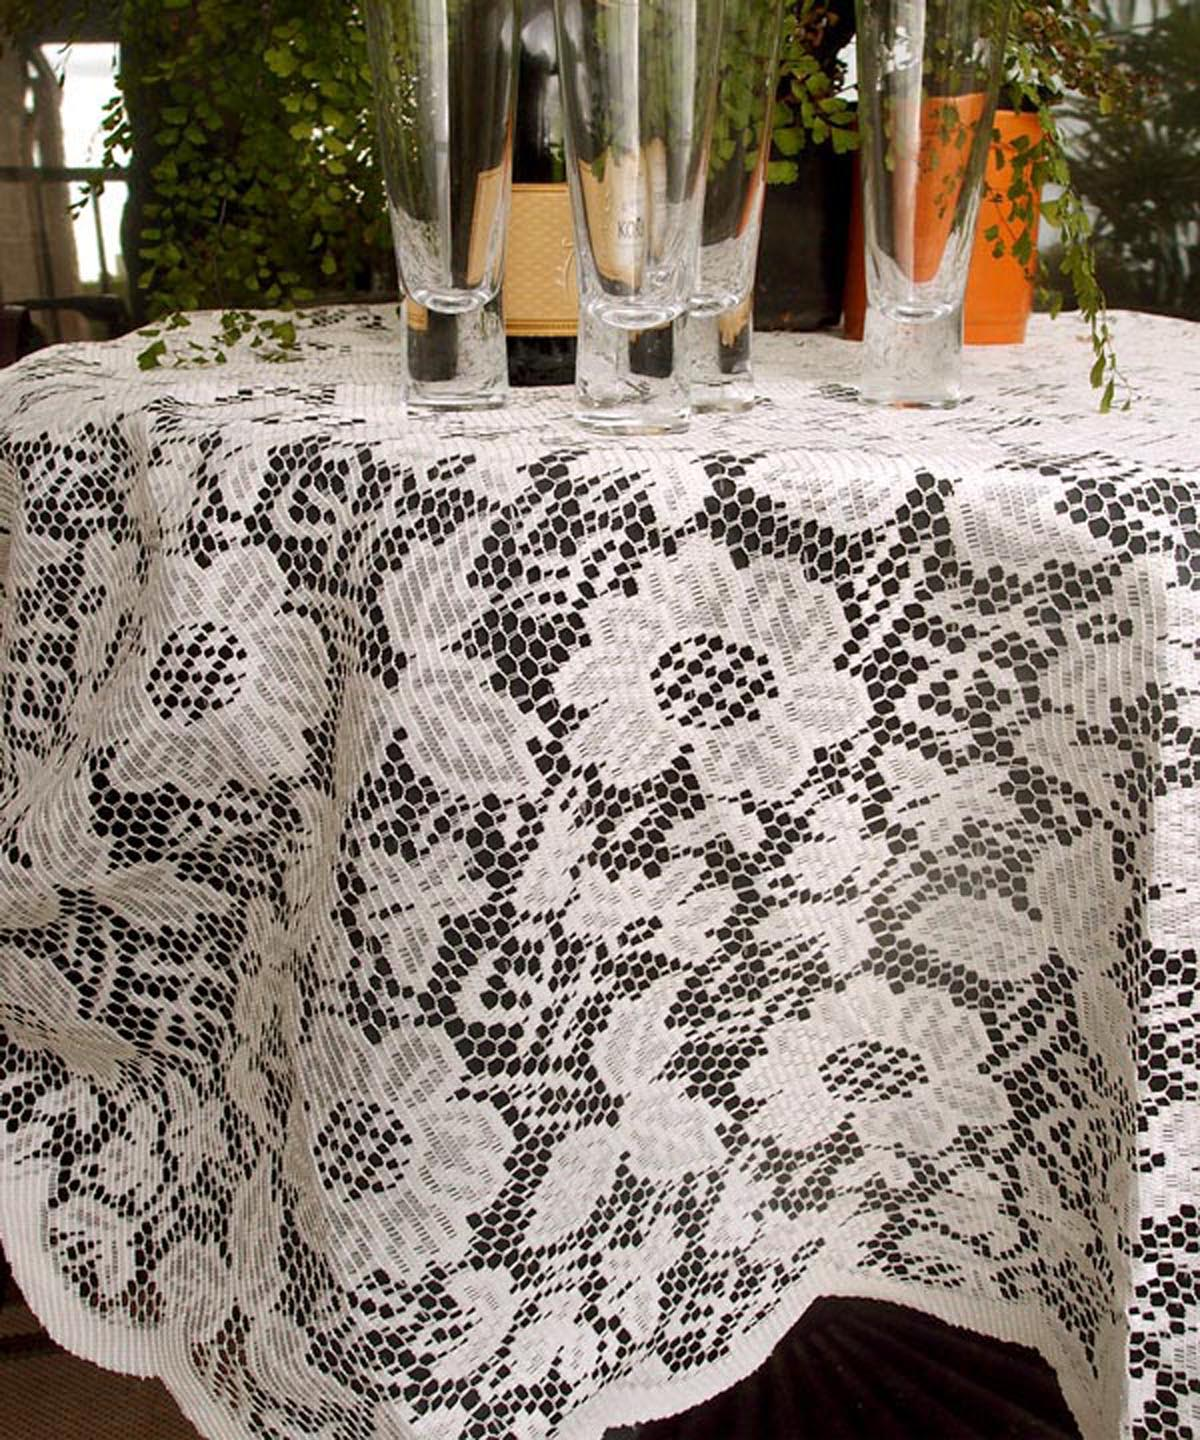 Cotton Lace Tablecloths | Target Tablecloth | Lace Tablecloths